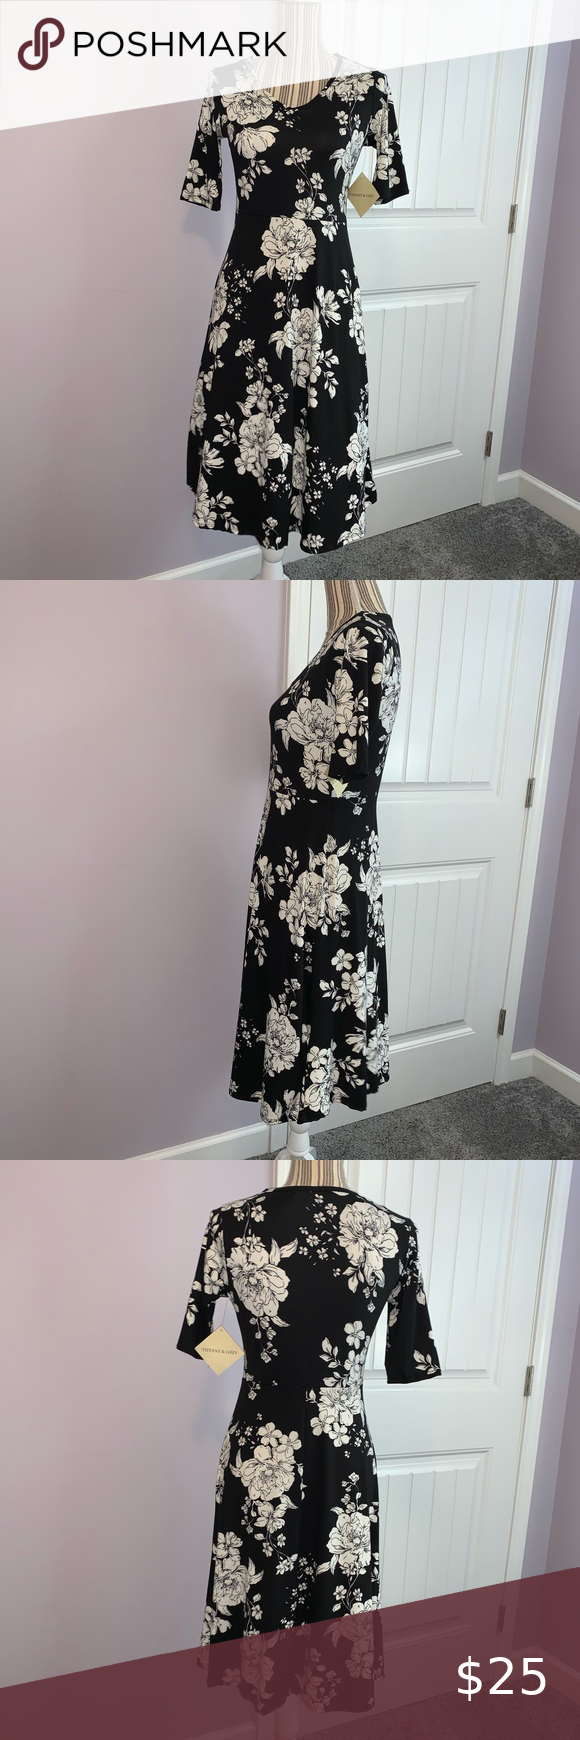 Nwt Black Floral Dress Size S New With Tags Tiffany Grey Dress Black Floral Dress Size Small Floral Dress Black Green Short Sleeve Dress Striped Knit Dress [ 1740 x 580 Pixel ]